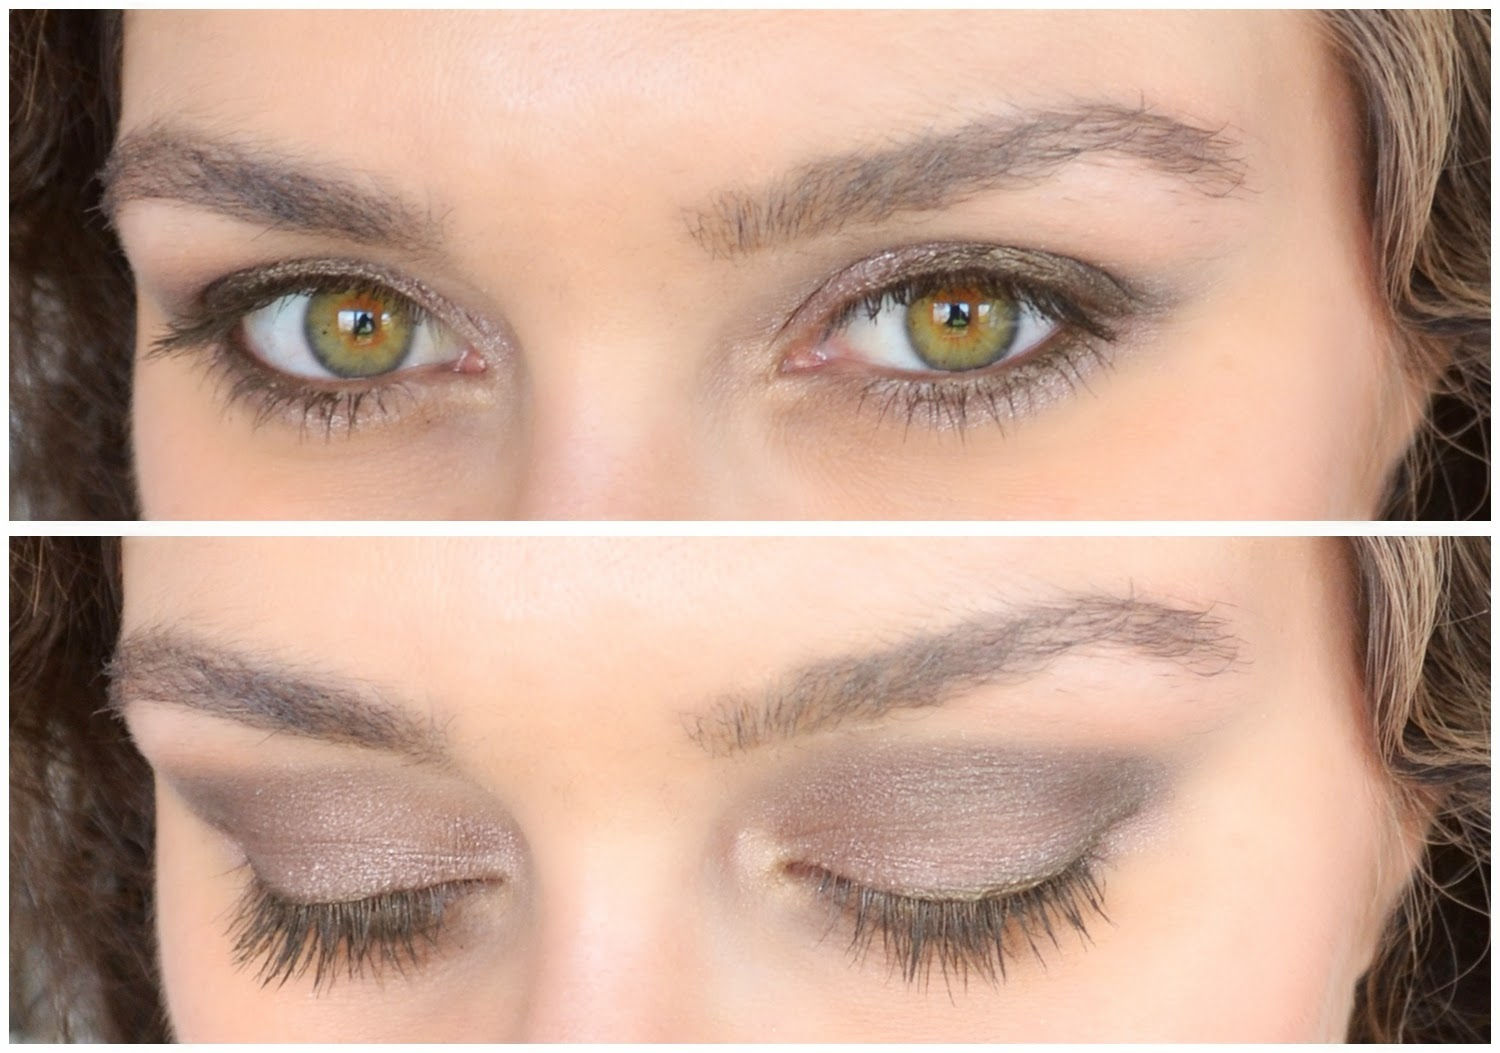 Inaction: Chanel Soft Touch Eye Shadow #101 Grigri